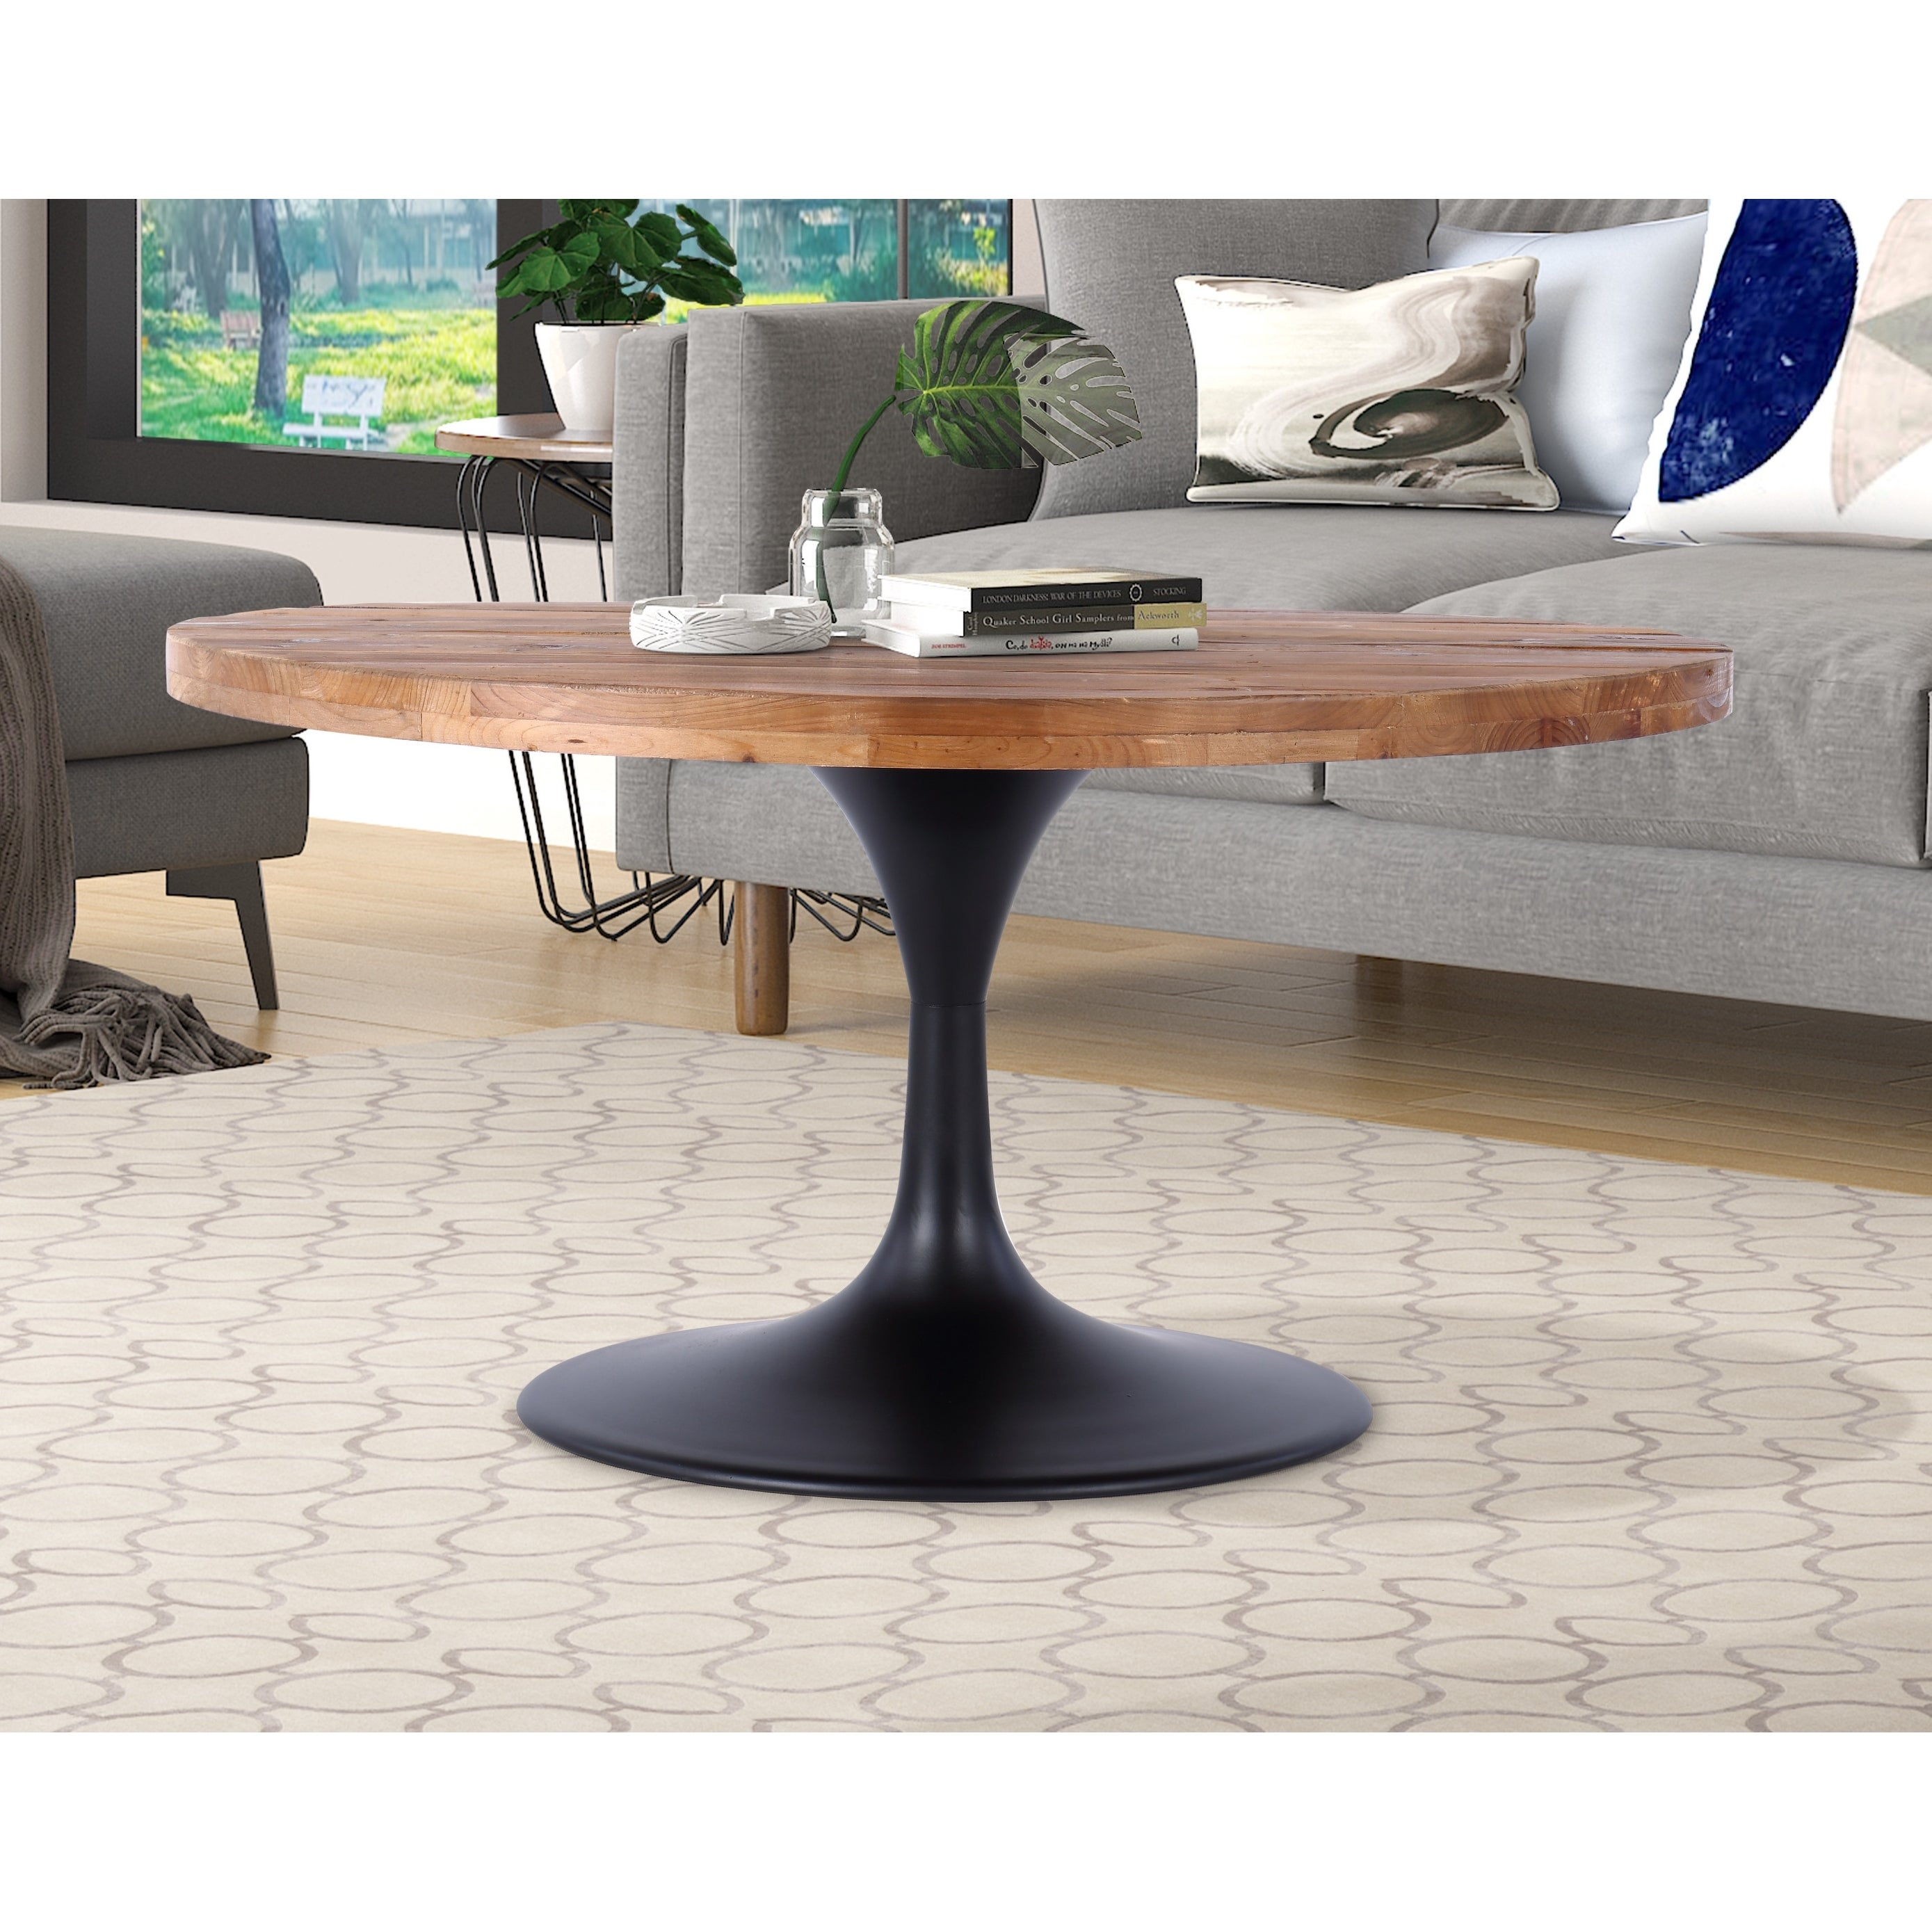 Camberwell 36 Round Reclaimed Wood And Metal Pedestal Coffee Table Overstock 32067404